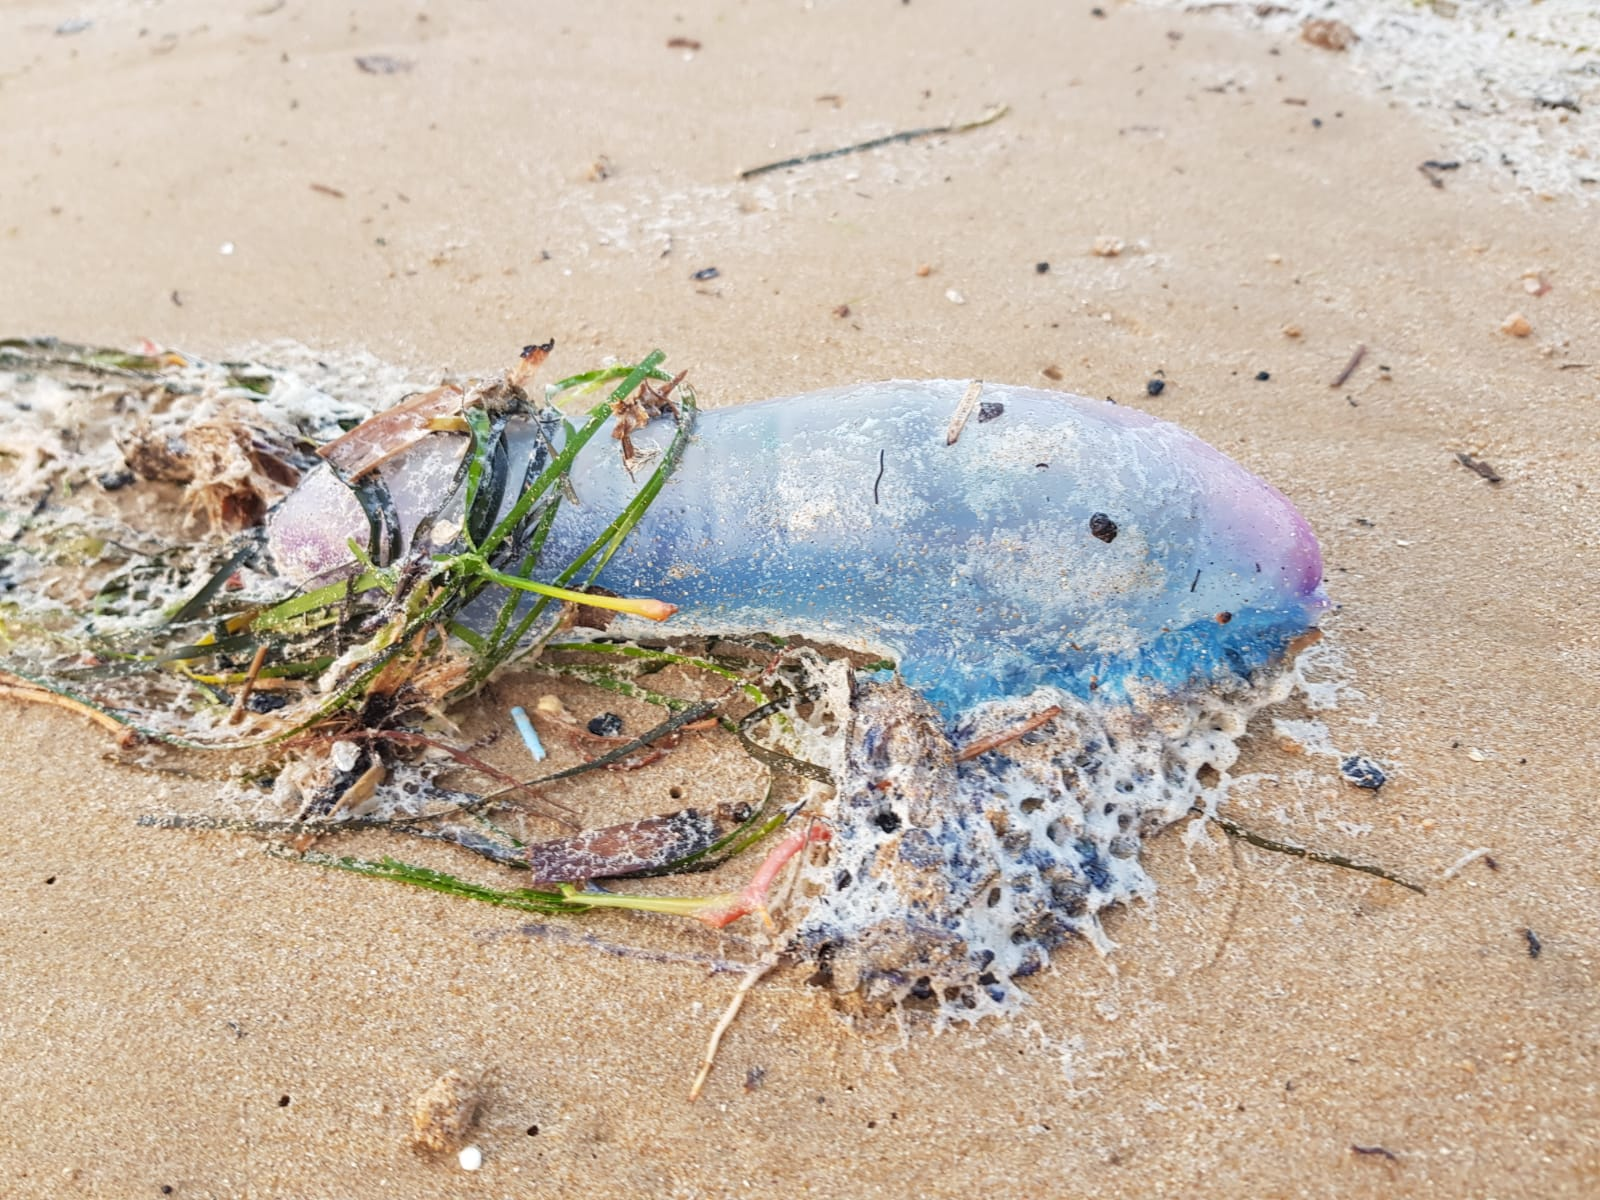 Extreme caution required when using local beaches